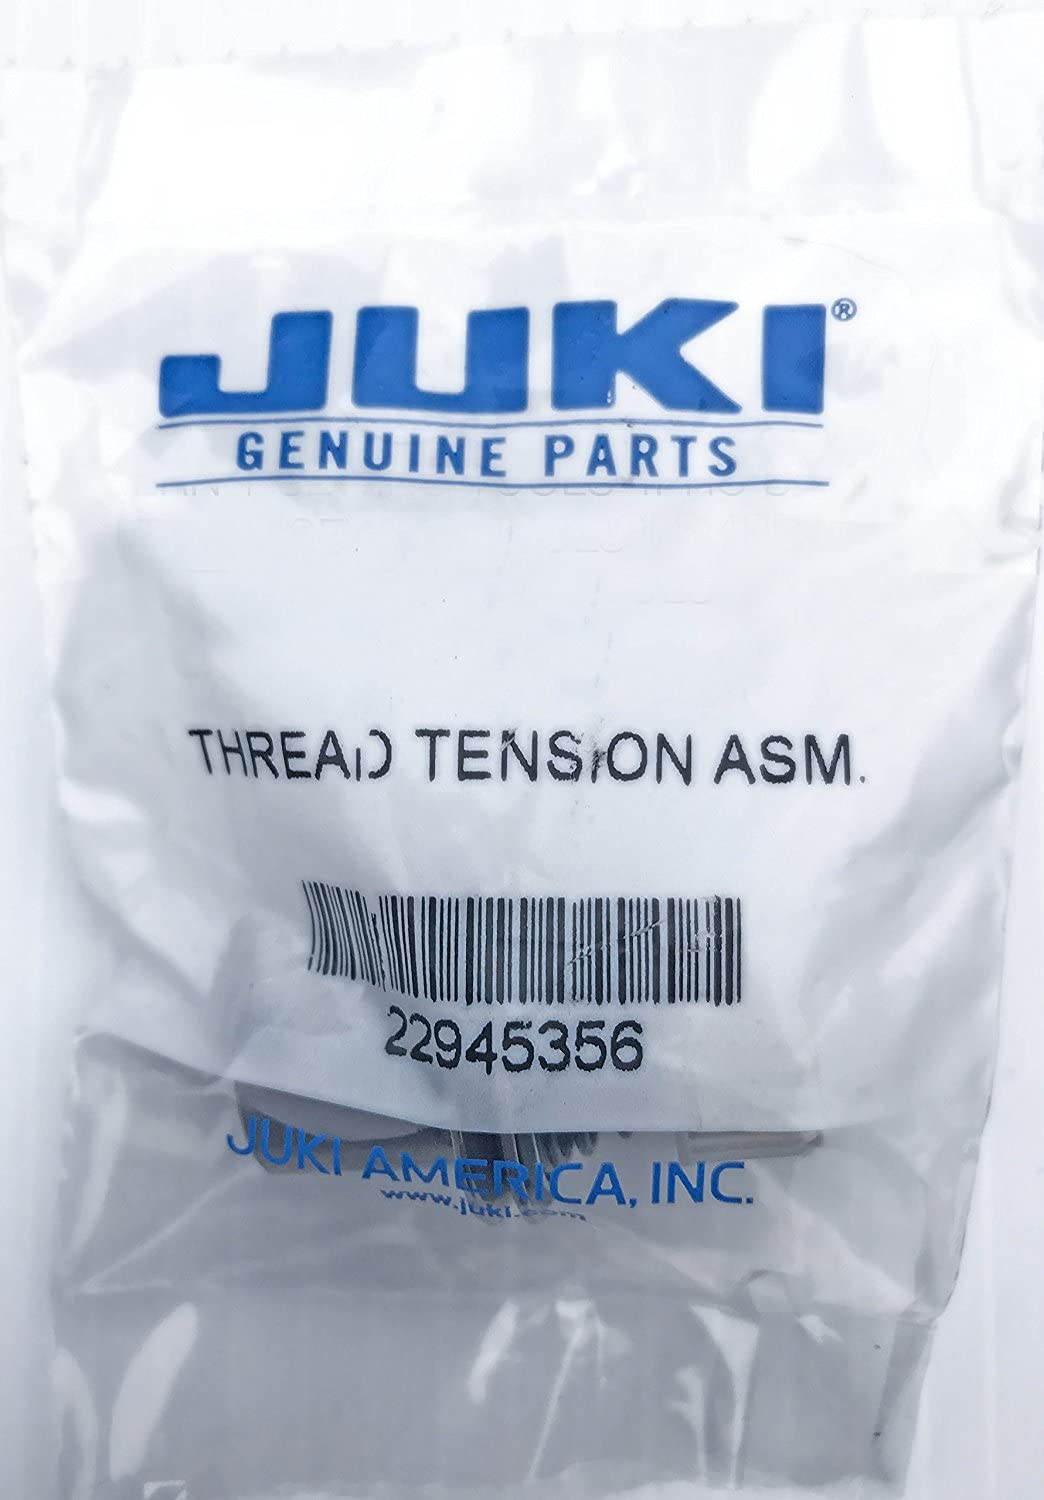 Juki Genuine Part- Part # 22945356 Japan Import - Comes in Sealed Juki Bag w// Bar Code // Do Not Accept Unsealed Bags Juki Original Thread Tension Assembly